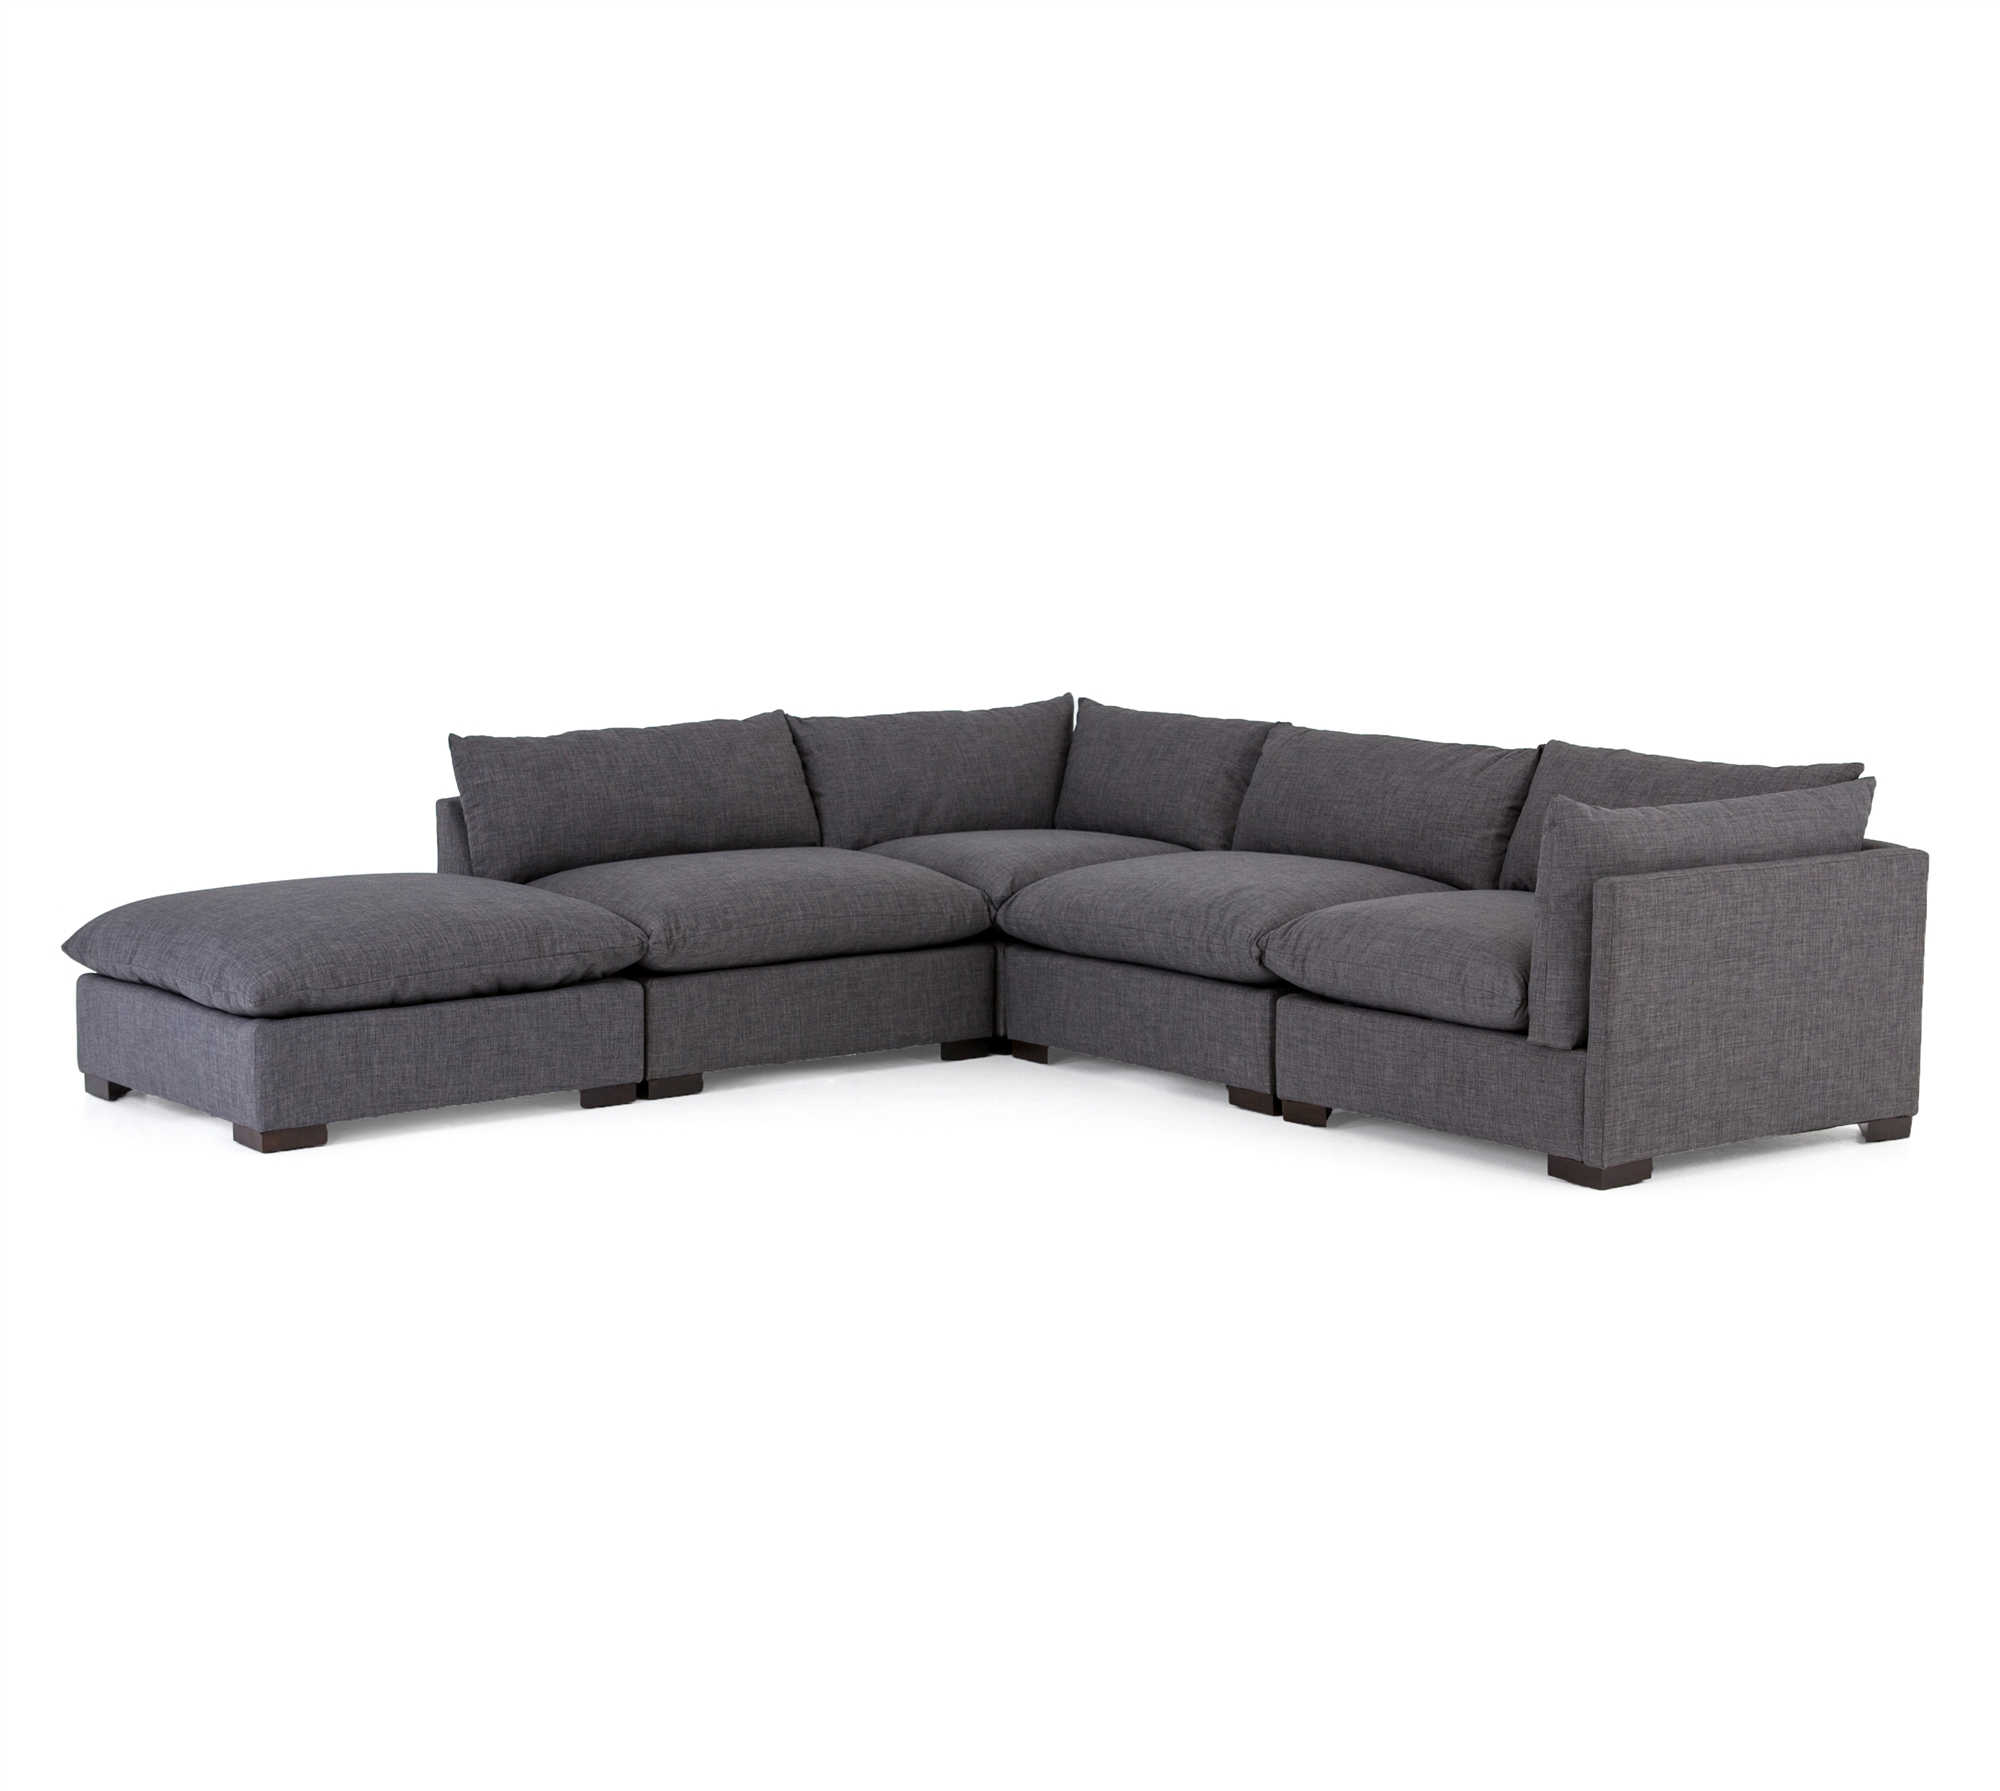 Amazing Westwood 4 Piece Sectional With Ottoman Pabps2019 Chair Design Images Pabps2019Com